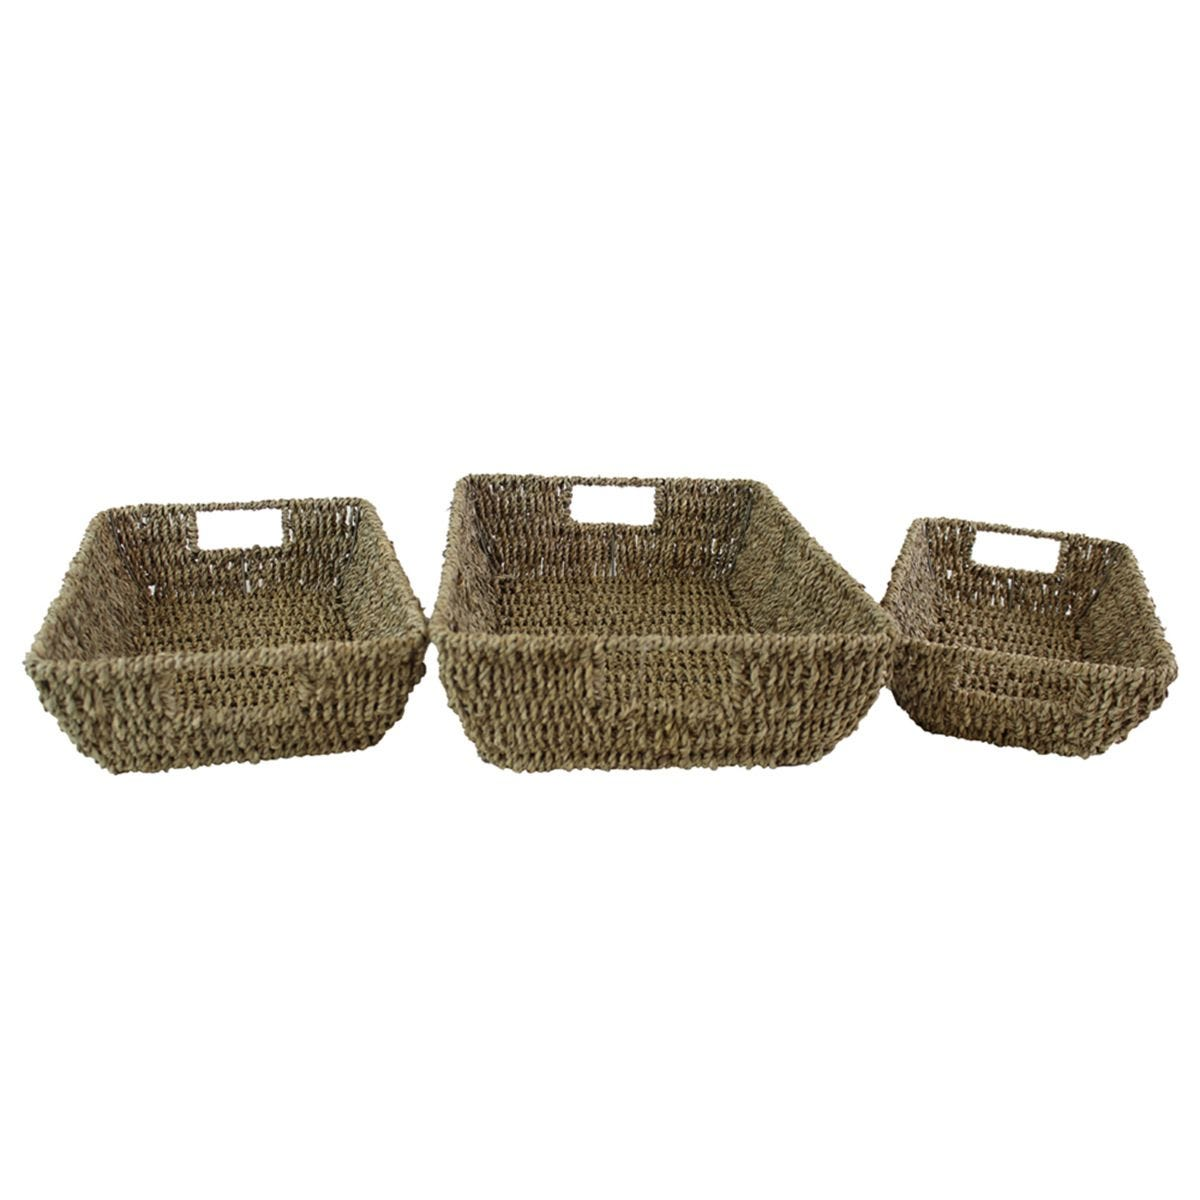 JVL Set Of 3 Tapered Seagrass Trays With Handles